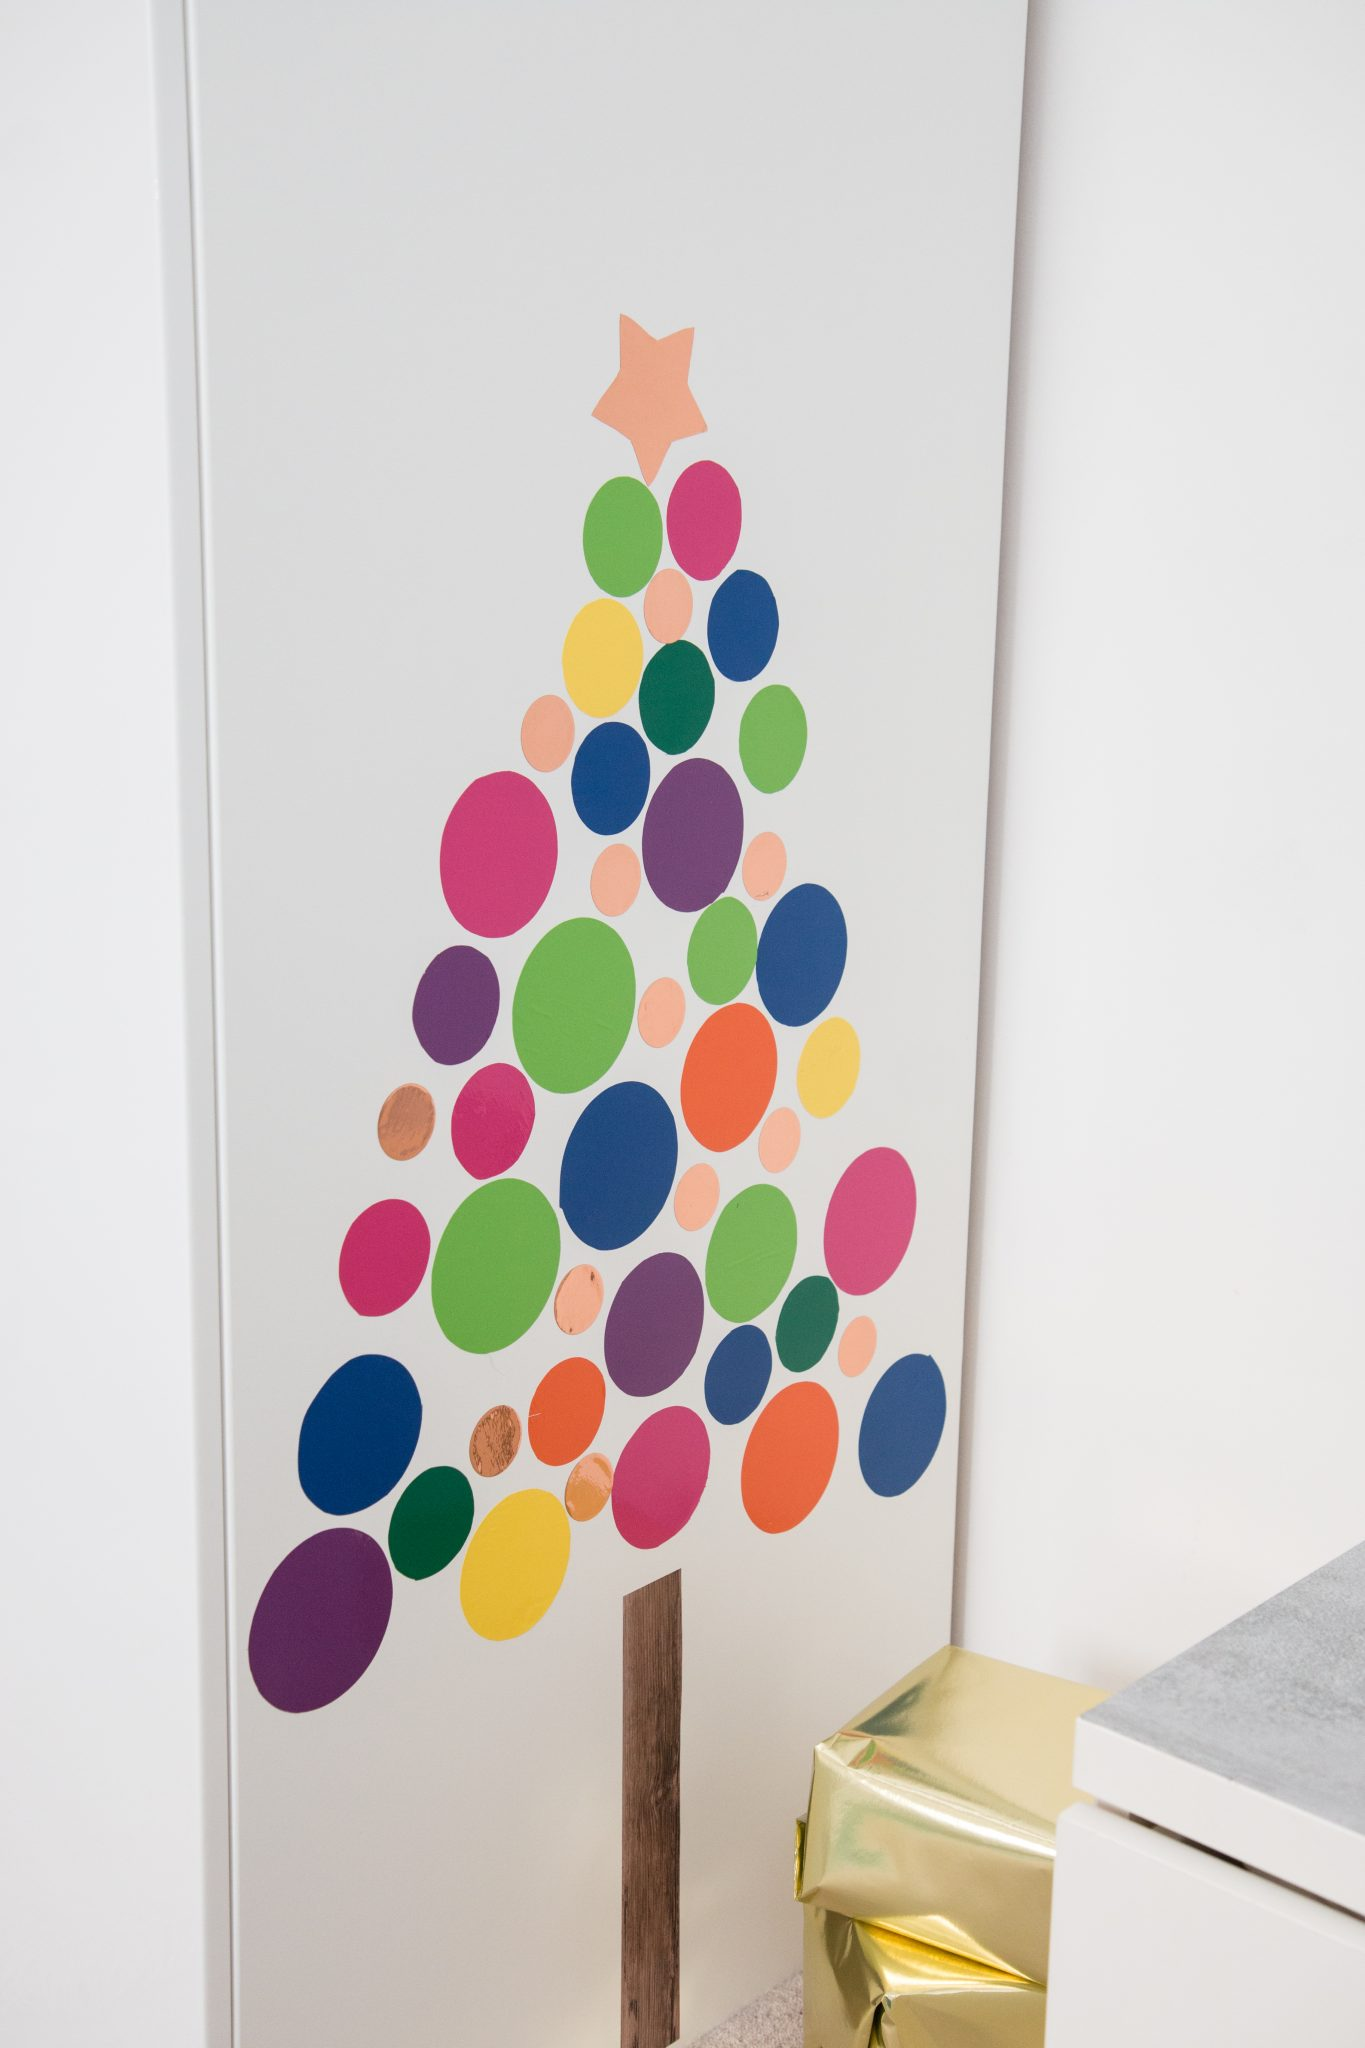 Various colorful circles made from d-c-fix® adhesive foils arranged in the form of a Christmas tree and stuck on.